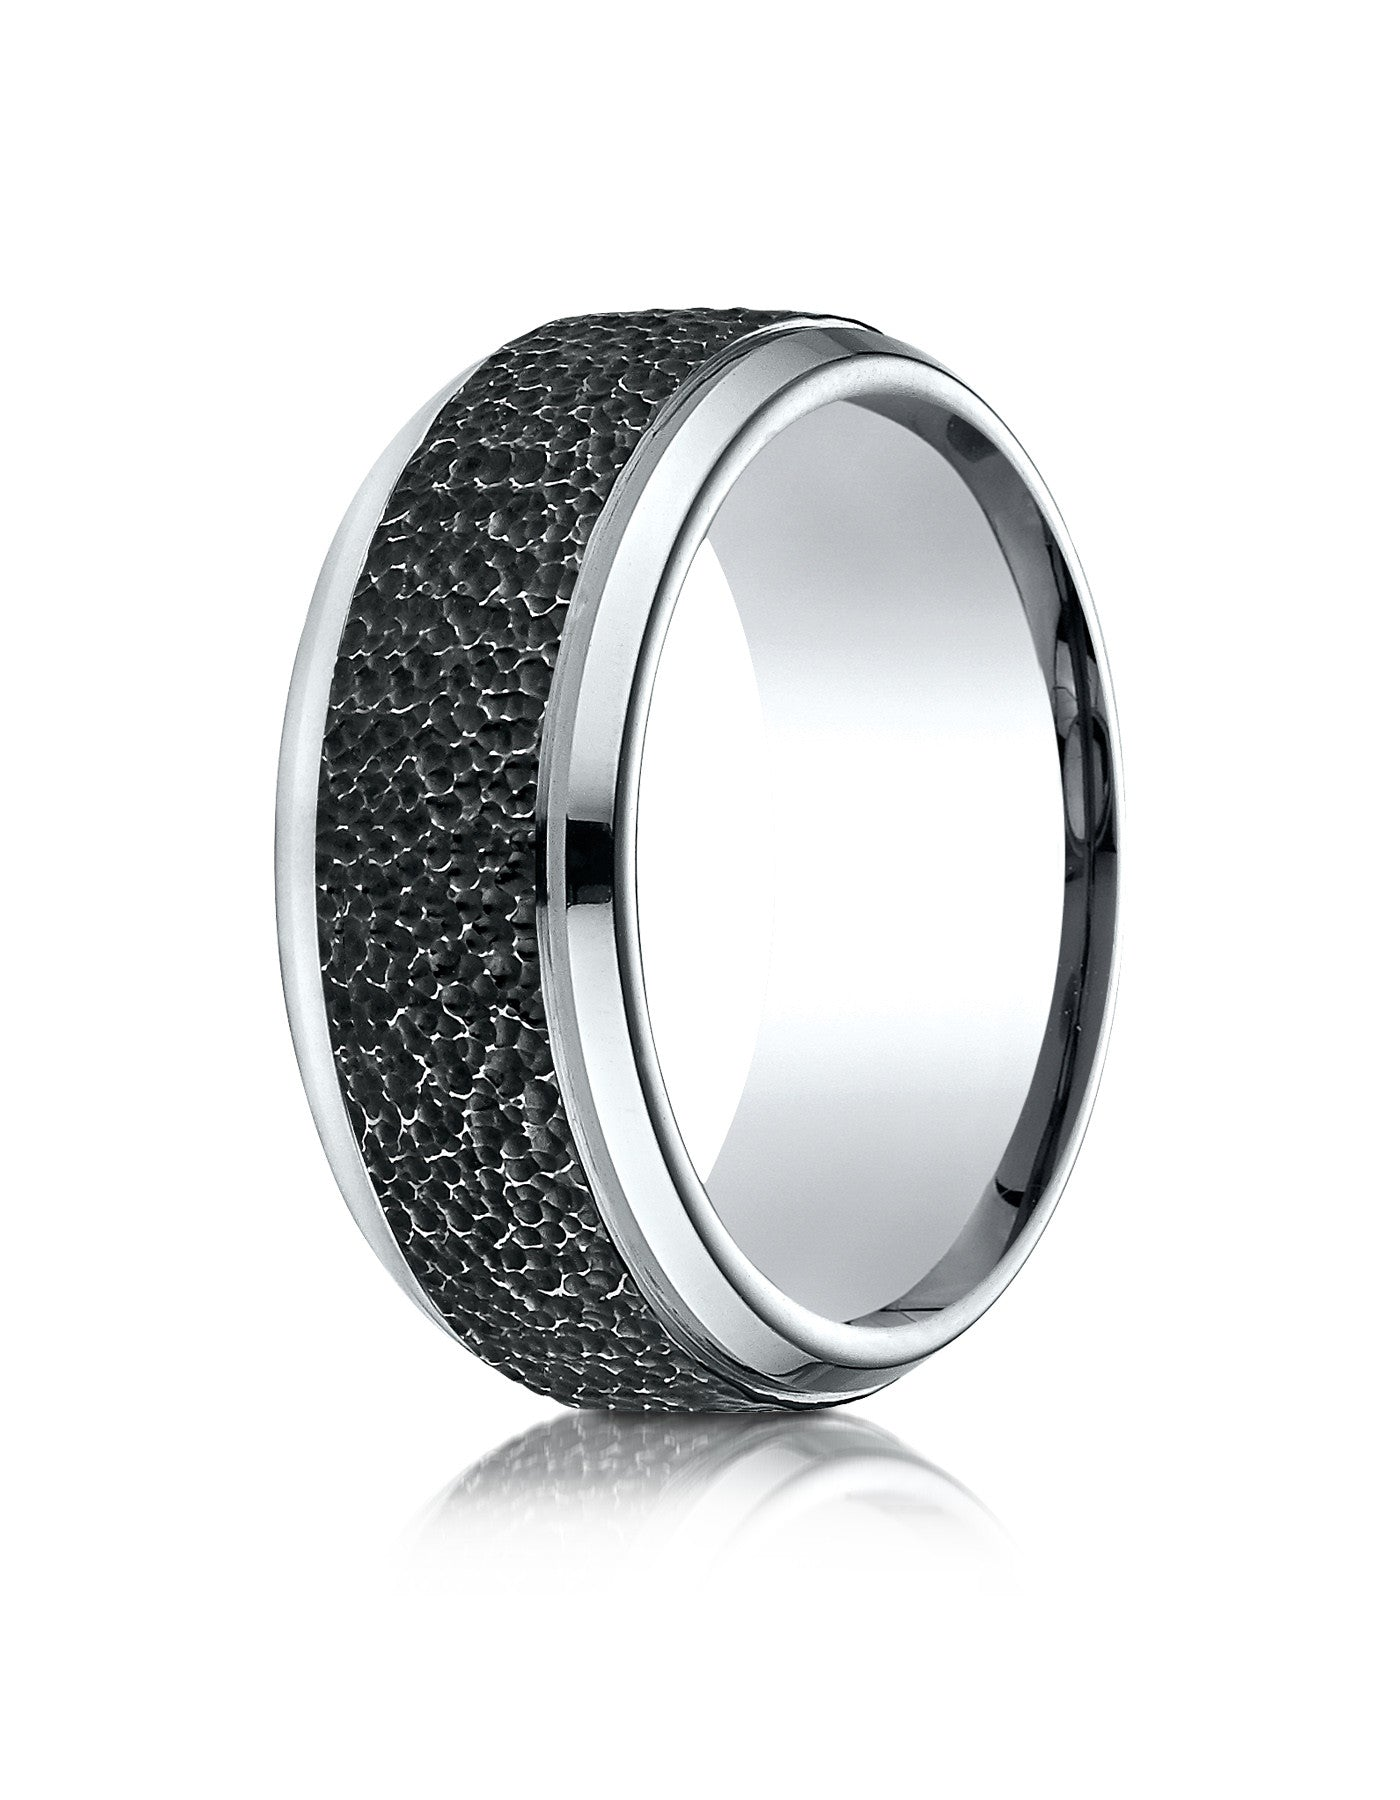 wal diamond bands rings engagement mart men s mens wedding classy black promise personalized